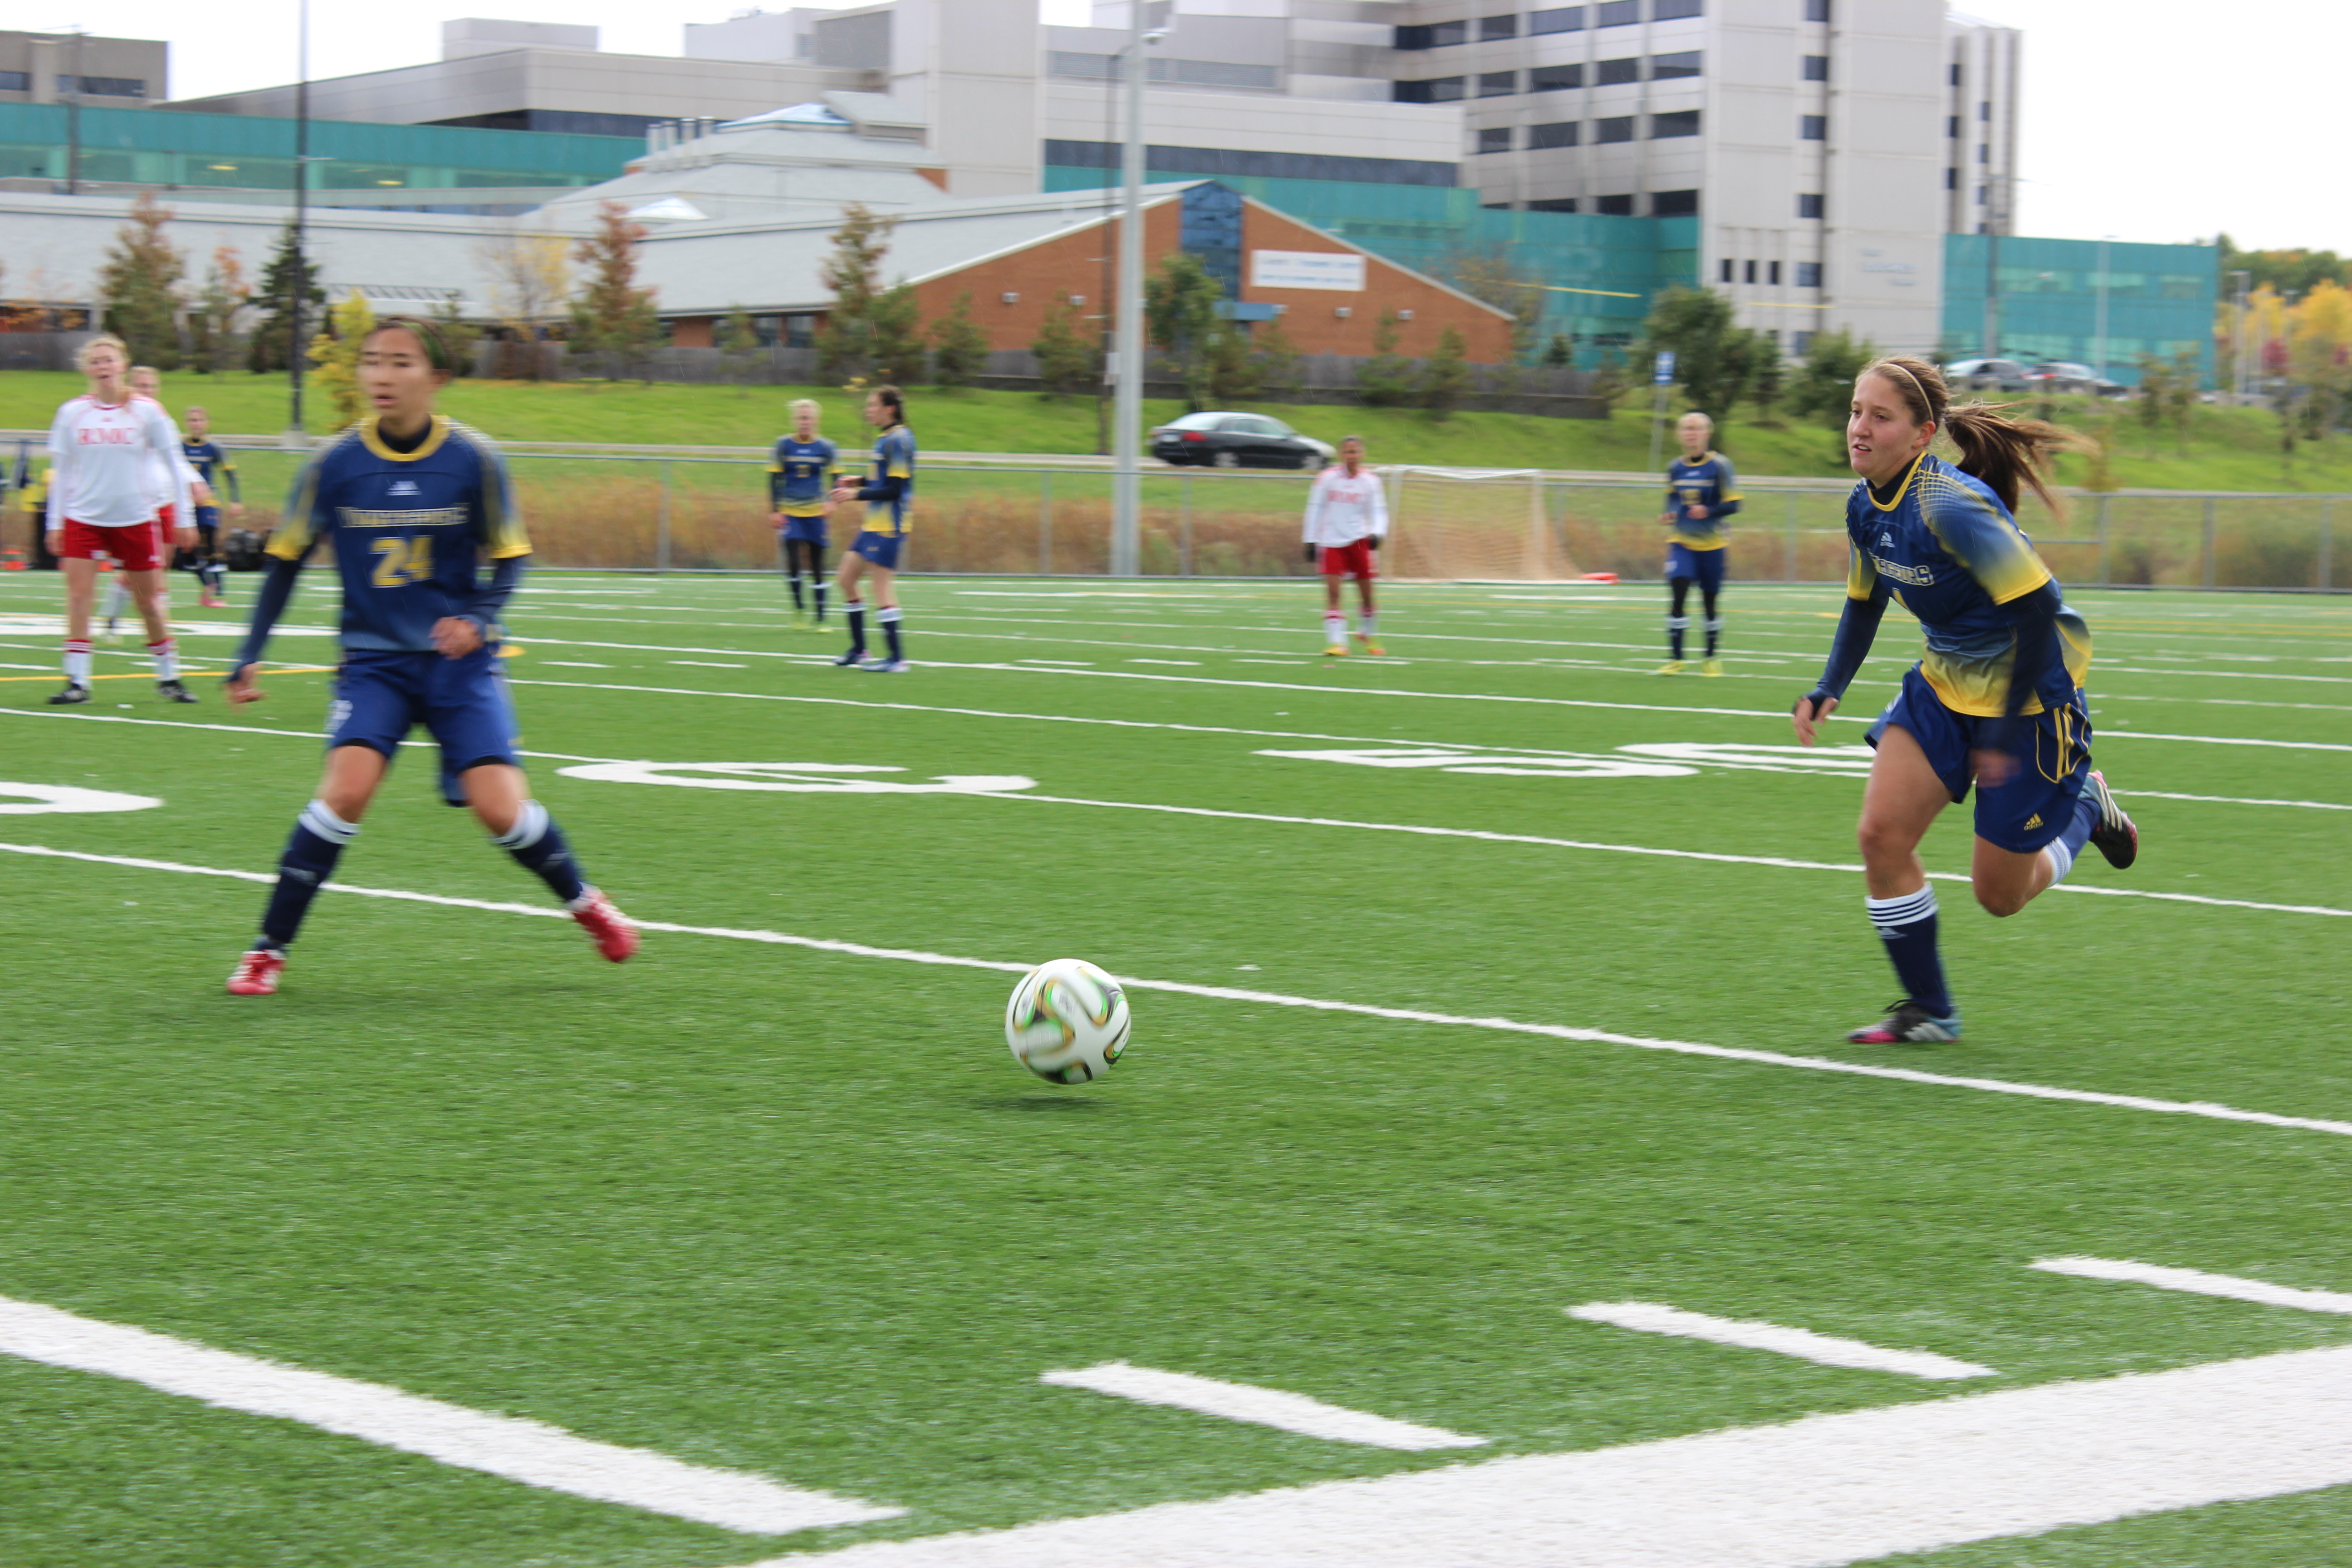 The women's soccer team playing at the turf this weekend. Photo by Anthony Crozzoli.